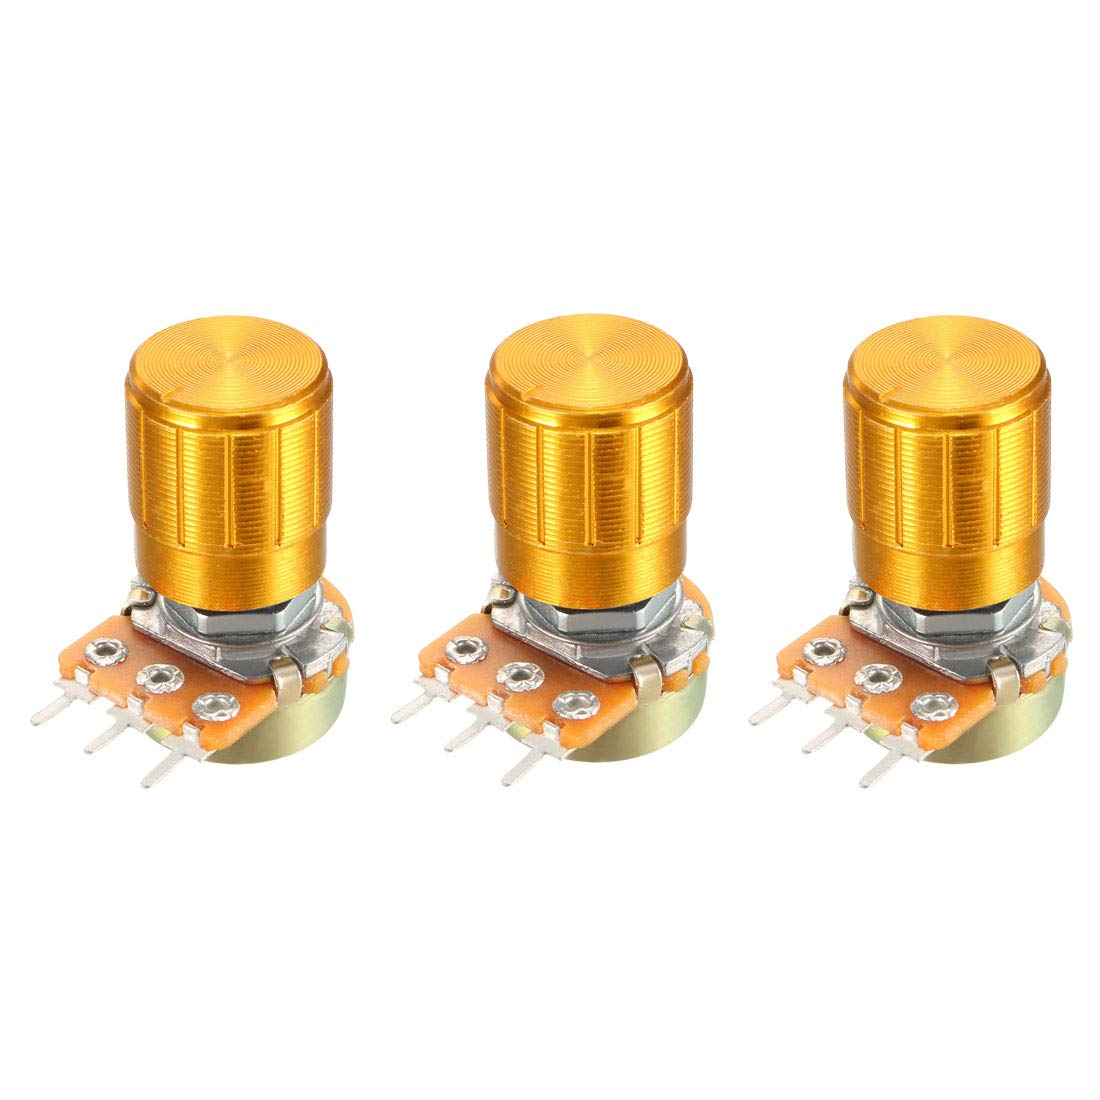 uxcell 3 Pcs 10K Ohm Variable Resistors Single Turn Rotary Carbon Film Taper Potentiometer with Knob